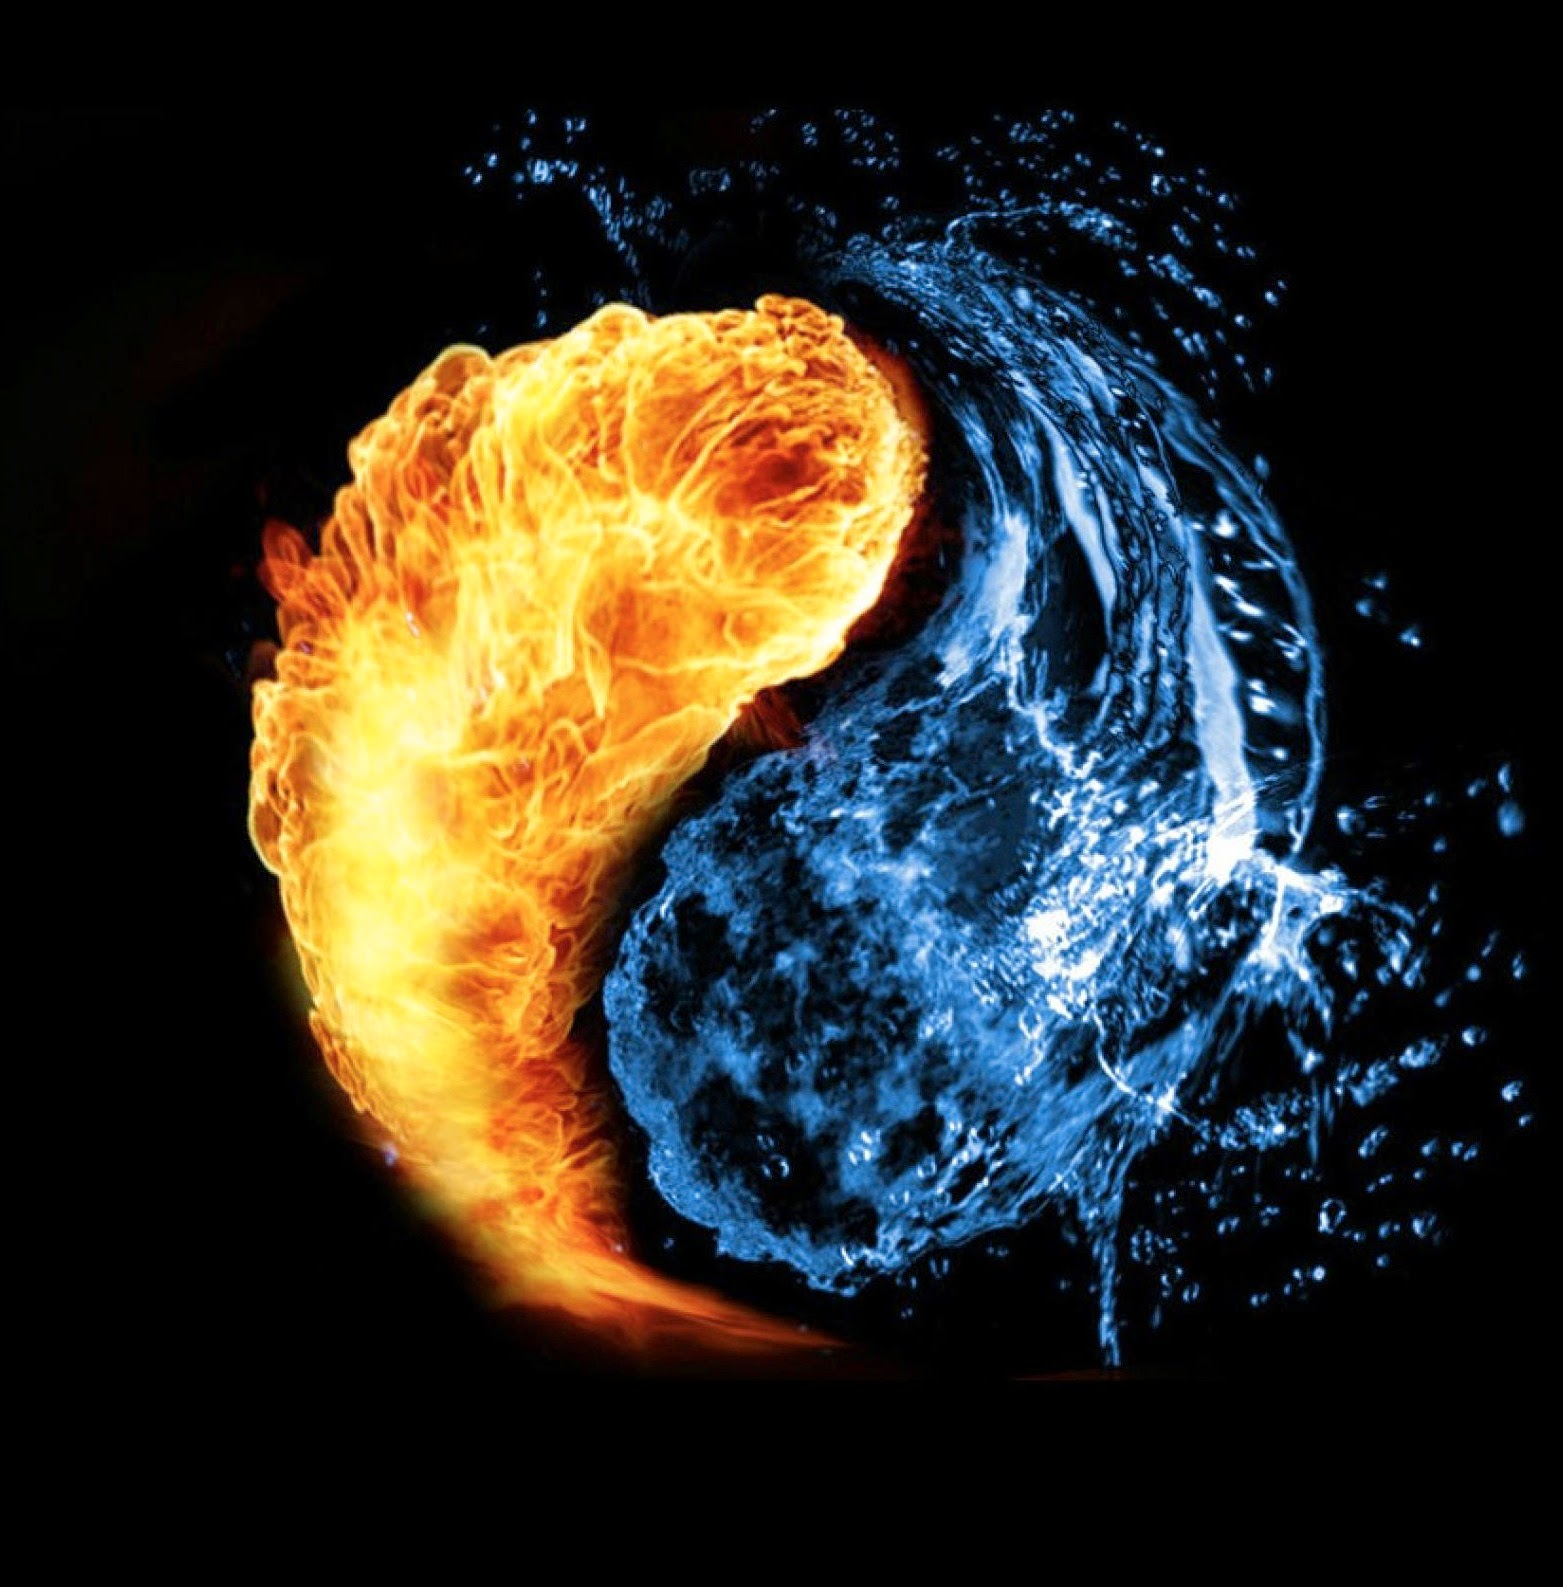 Wallpaper Illusion 3d Architalk Fire And Water